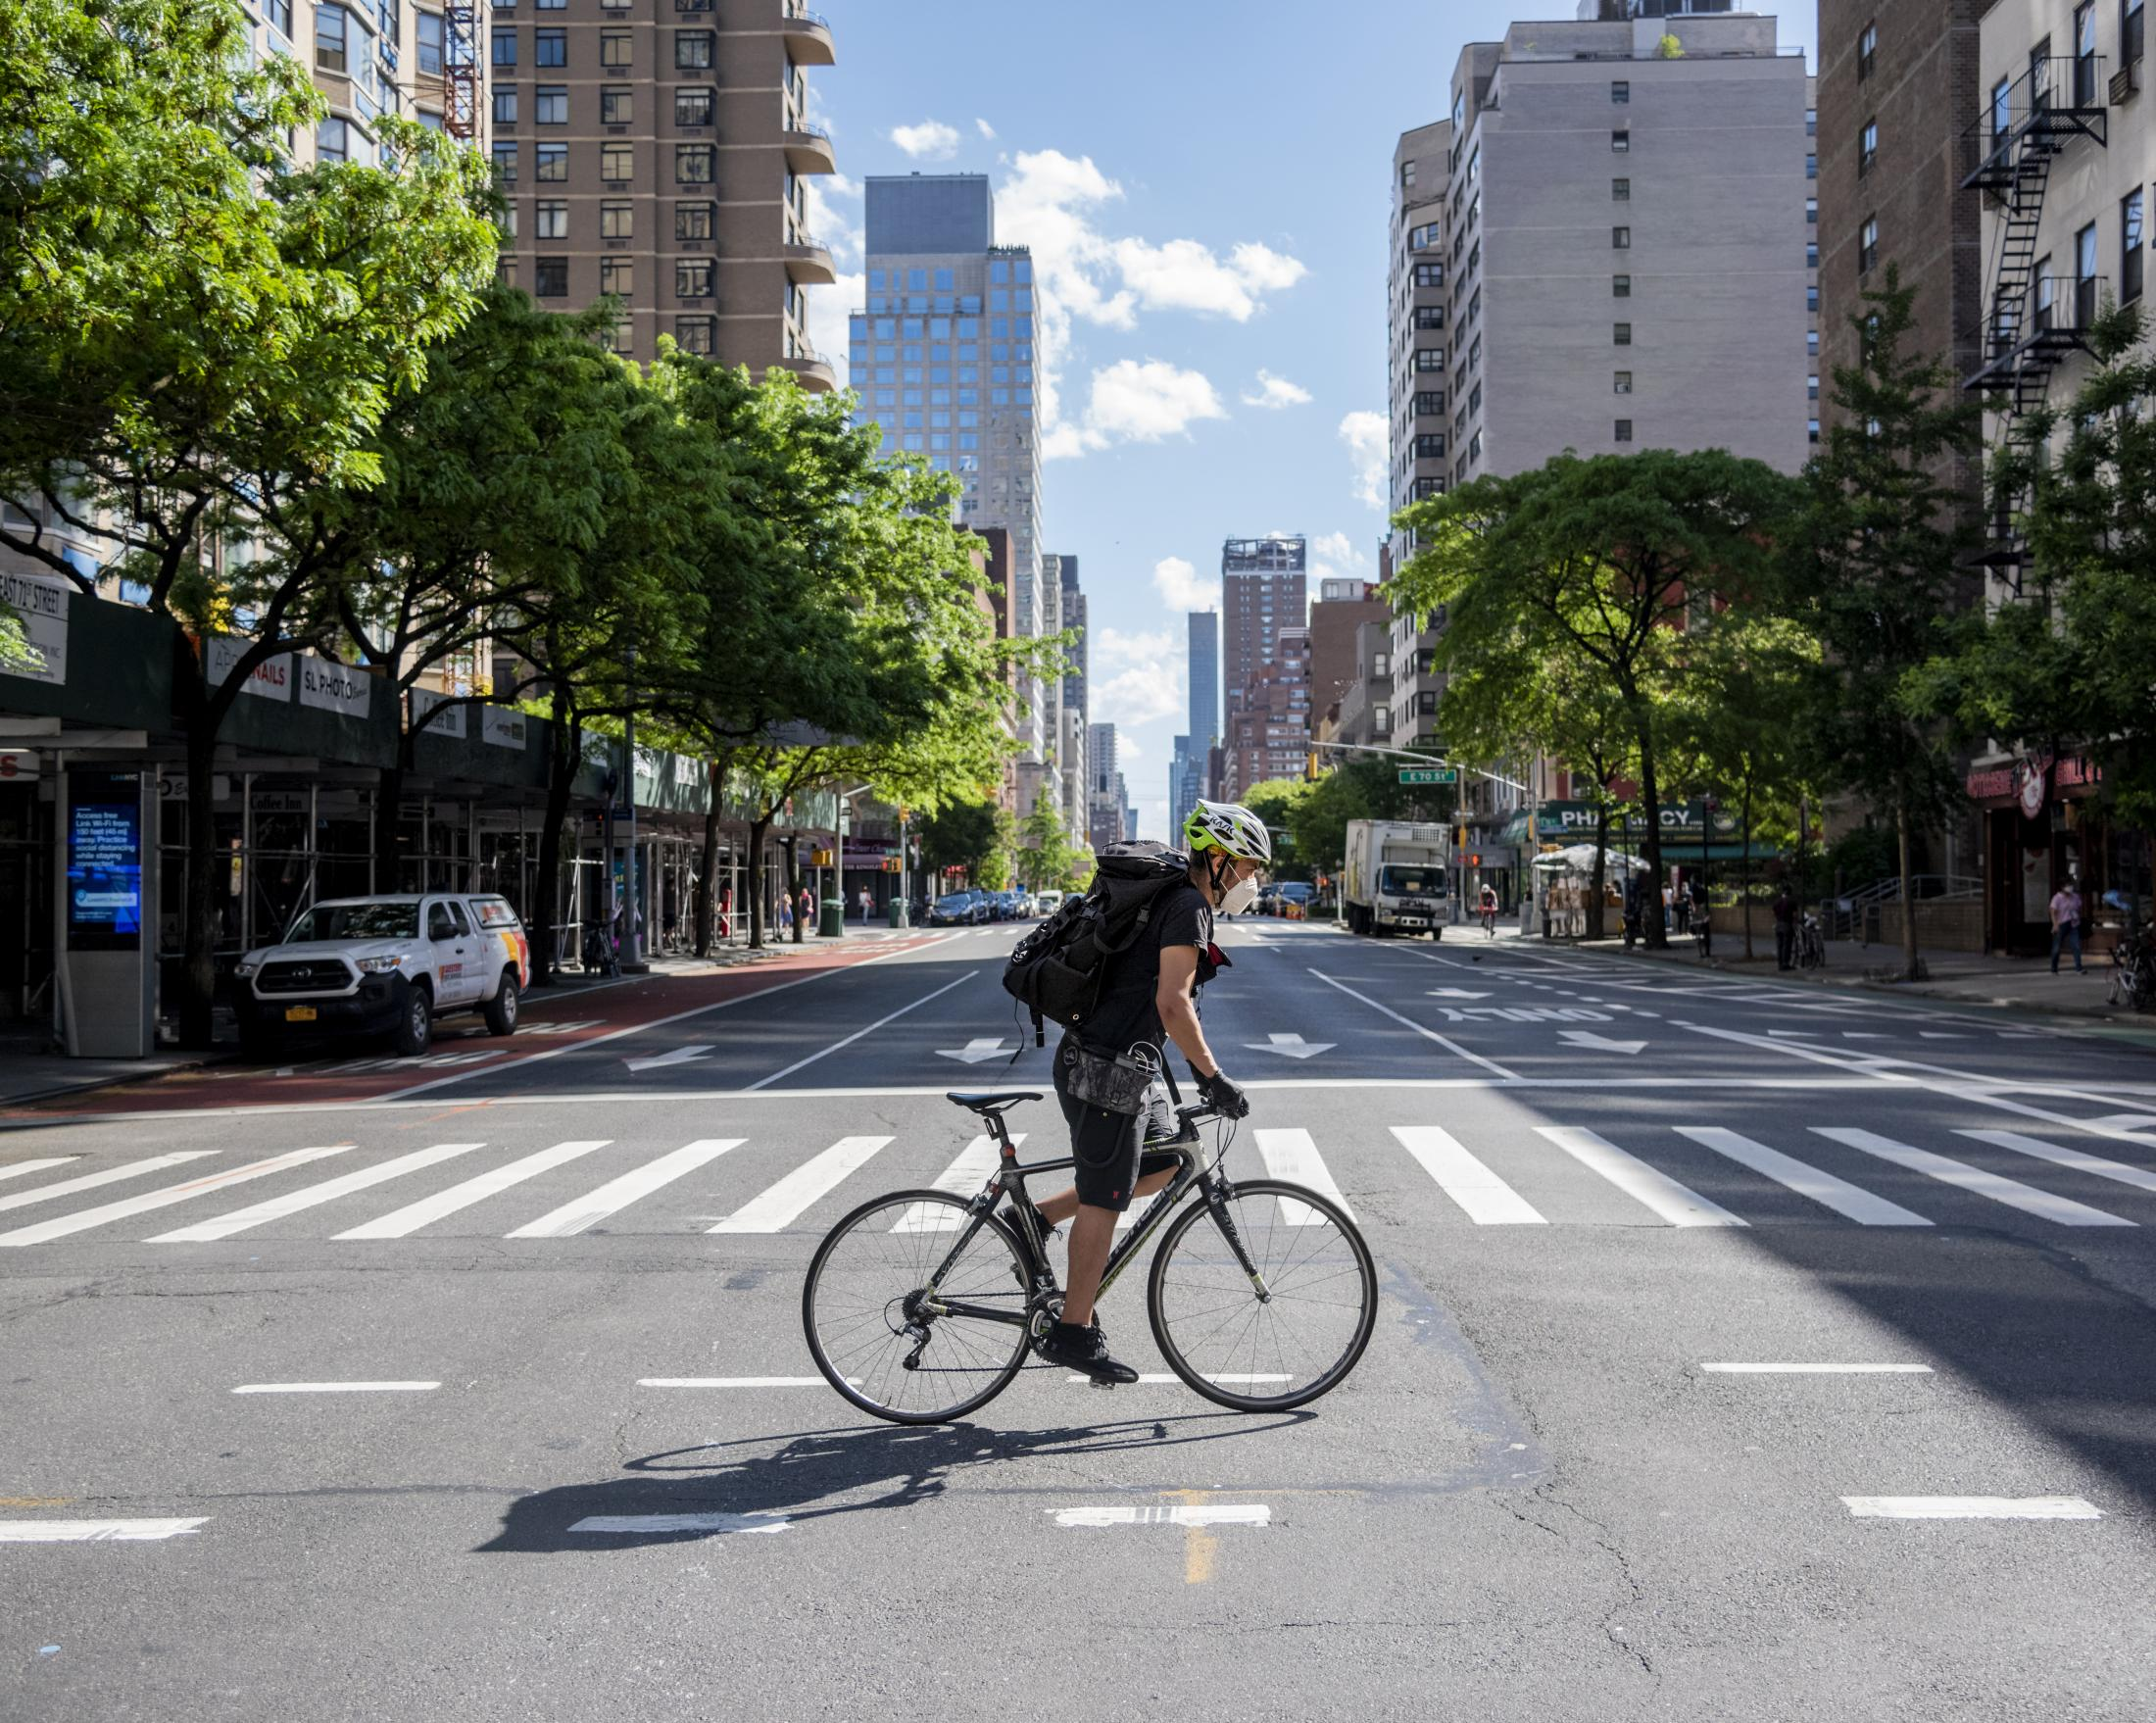 Jaciel biking over an empty Midtown Manhattan intersection during the lockdown in New York. He explains in an interview: 'For me as a cyclist, being able to use the city this empty, felt like a privilege, almost like in a videogame.'.